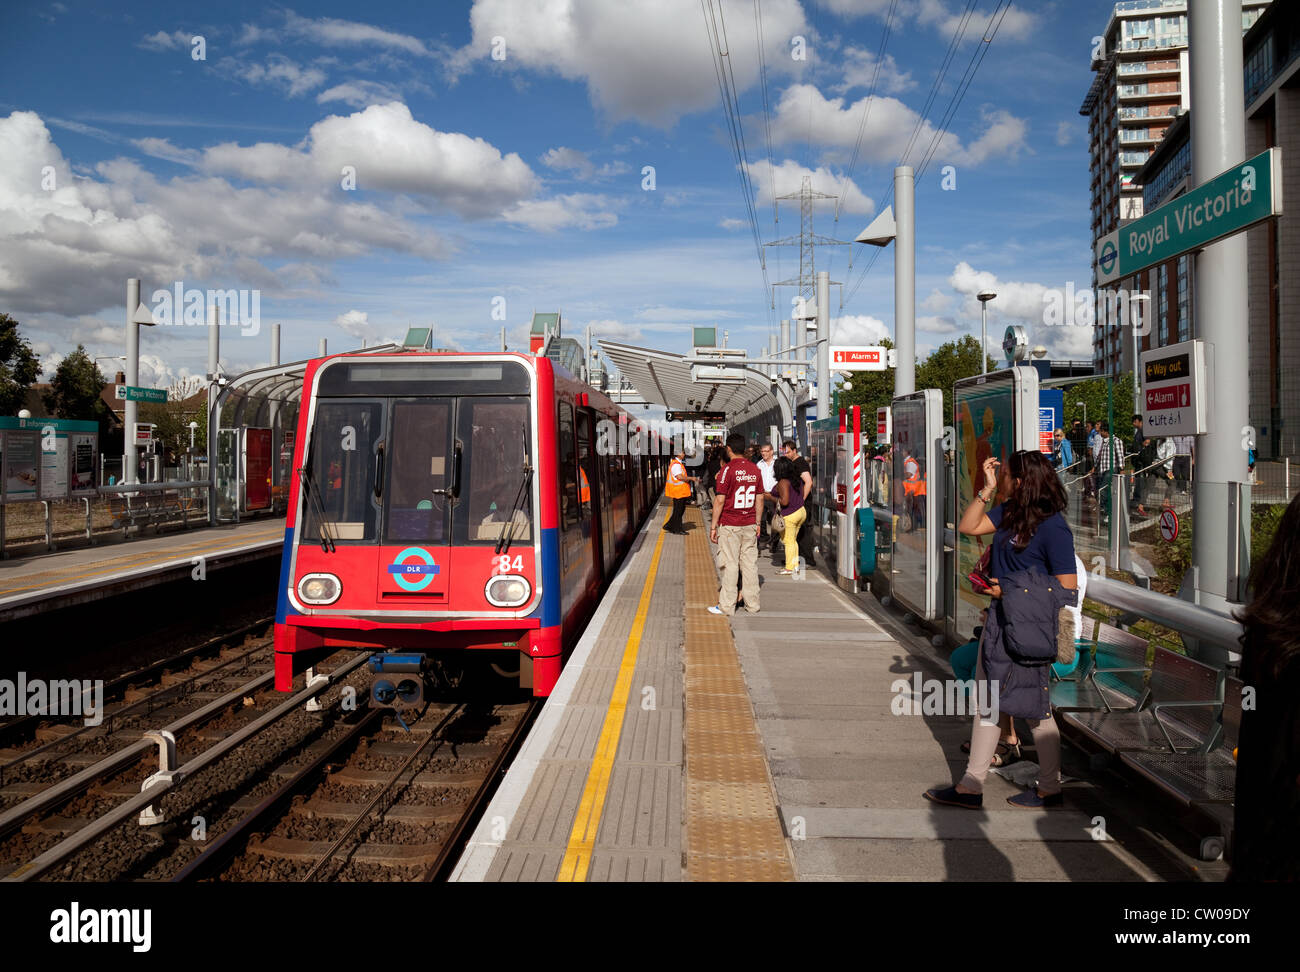 Passengers and a train at the DLR (Docklands Light Railway) station at Royal Victoria, London UK Stock Photo